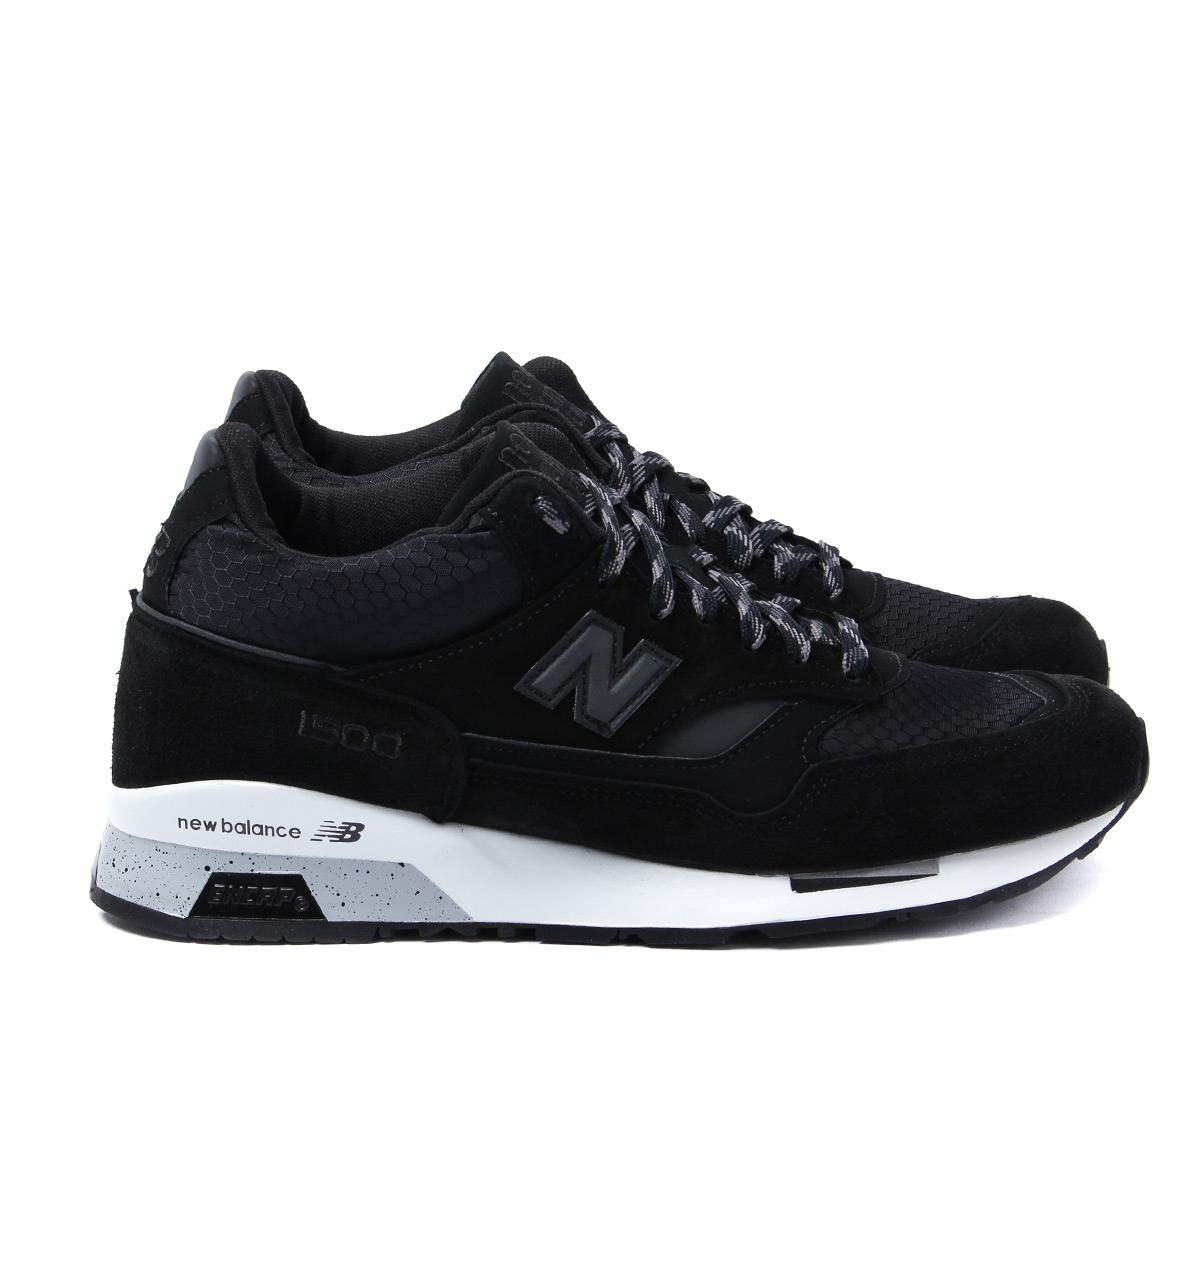 9a391a5183ef2 New Balance 1500 Black Runner Trainers in Black for Men - Lyst